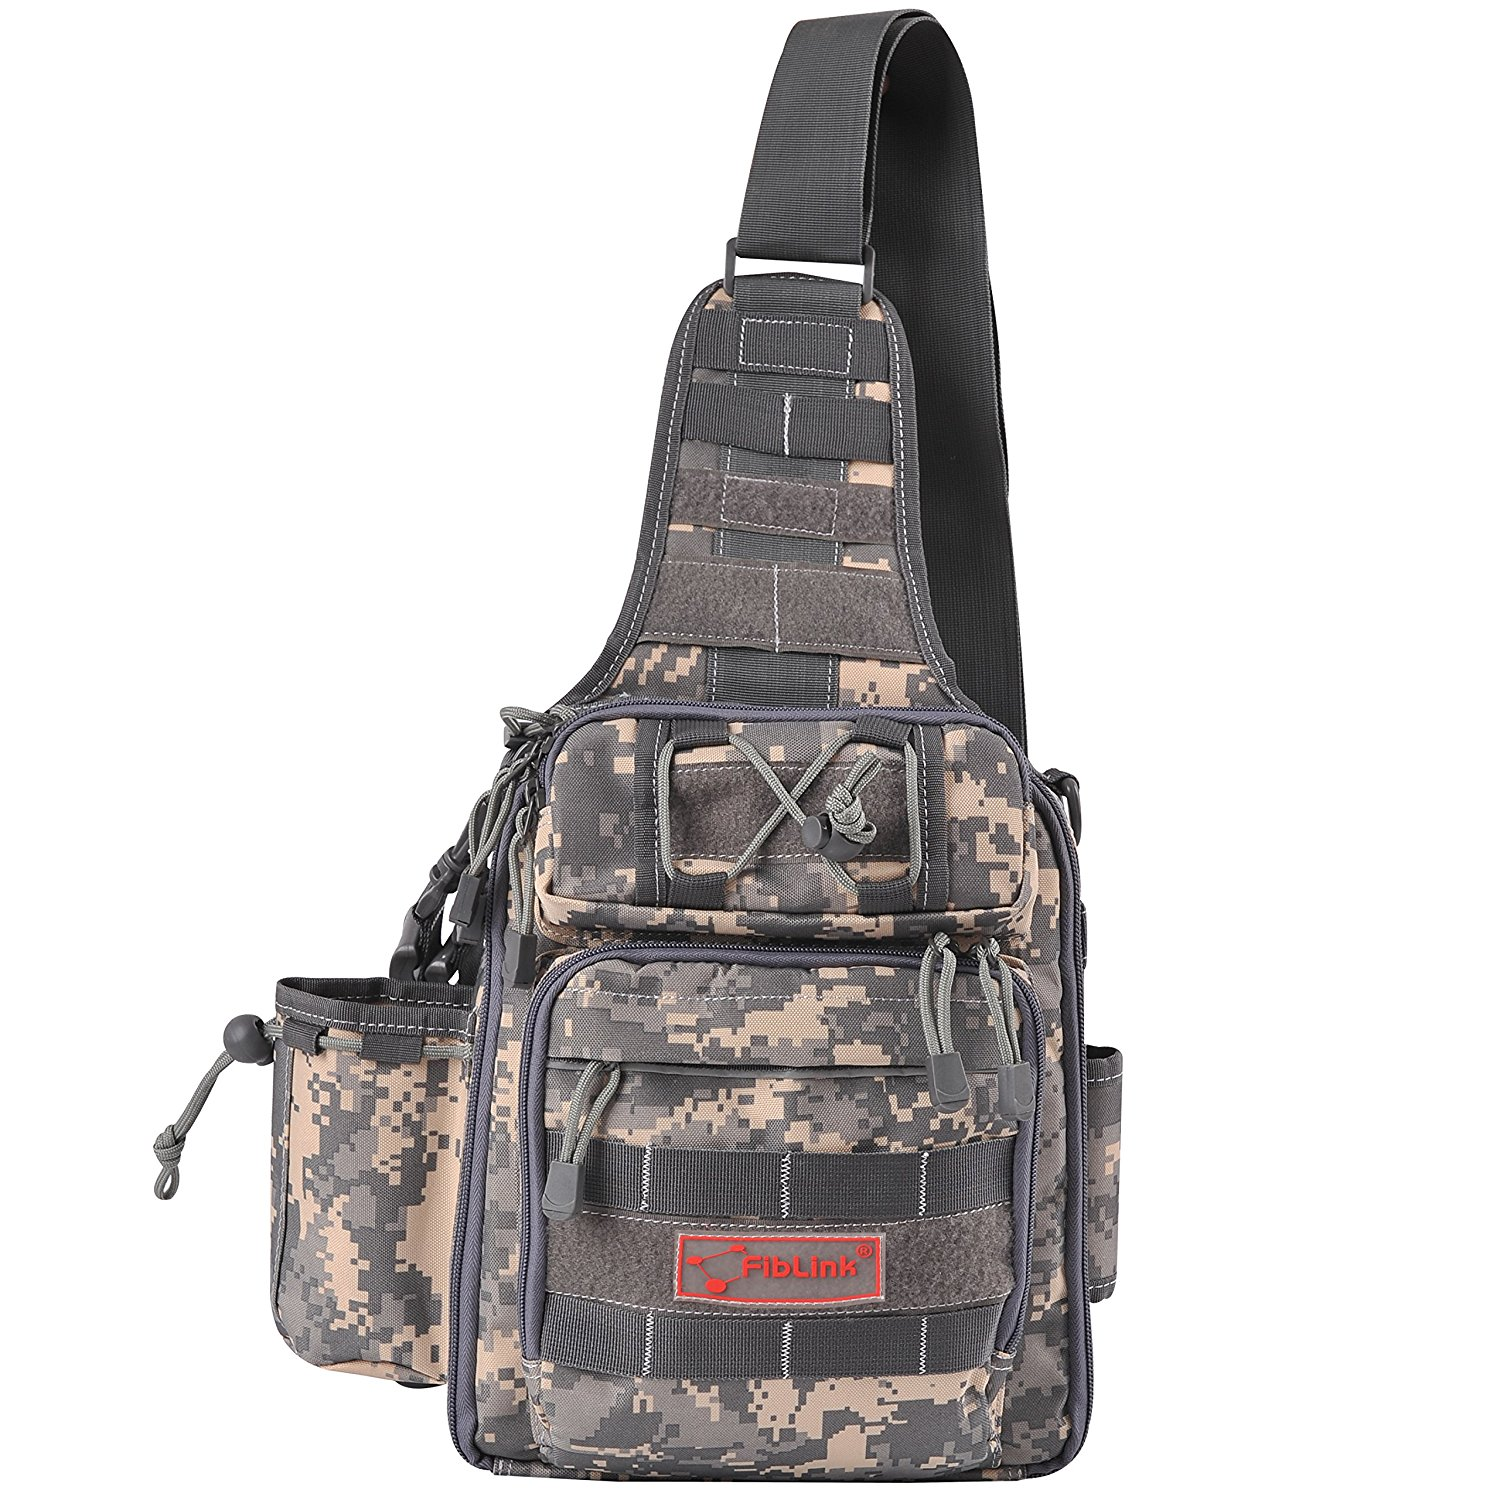 Fiblink Single Shoulder Fishing Tackle Backpack